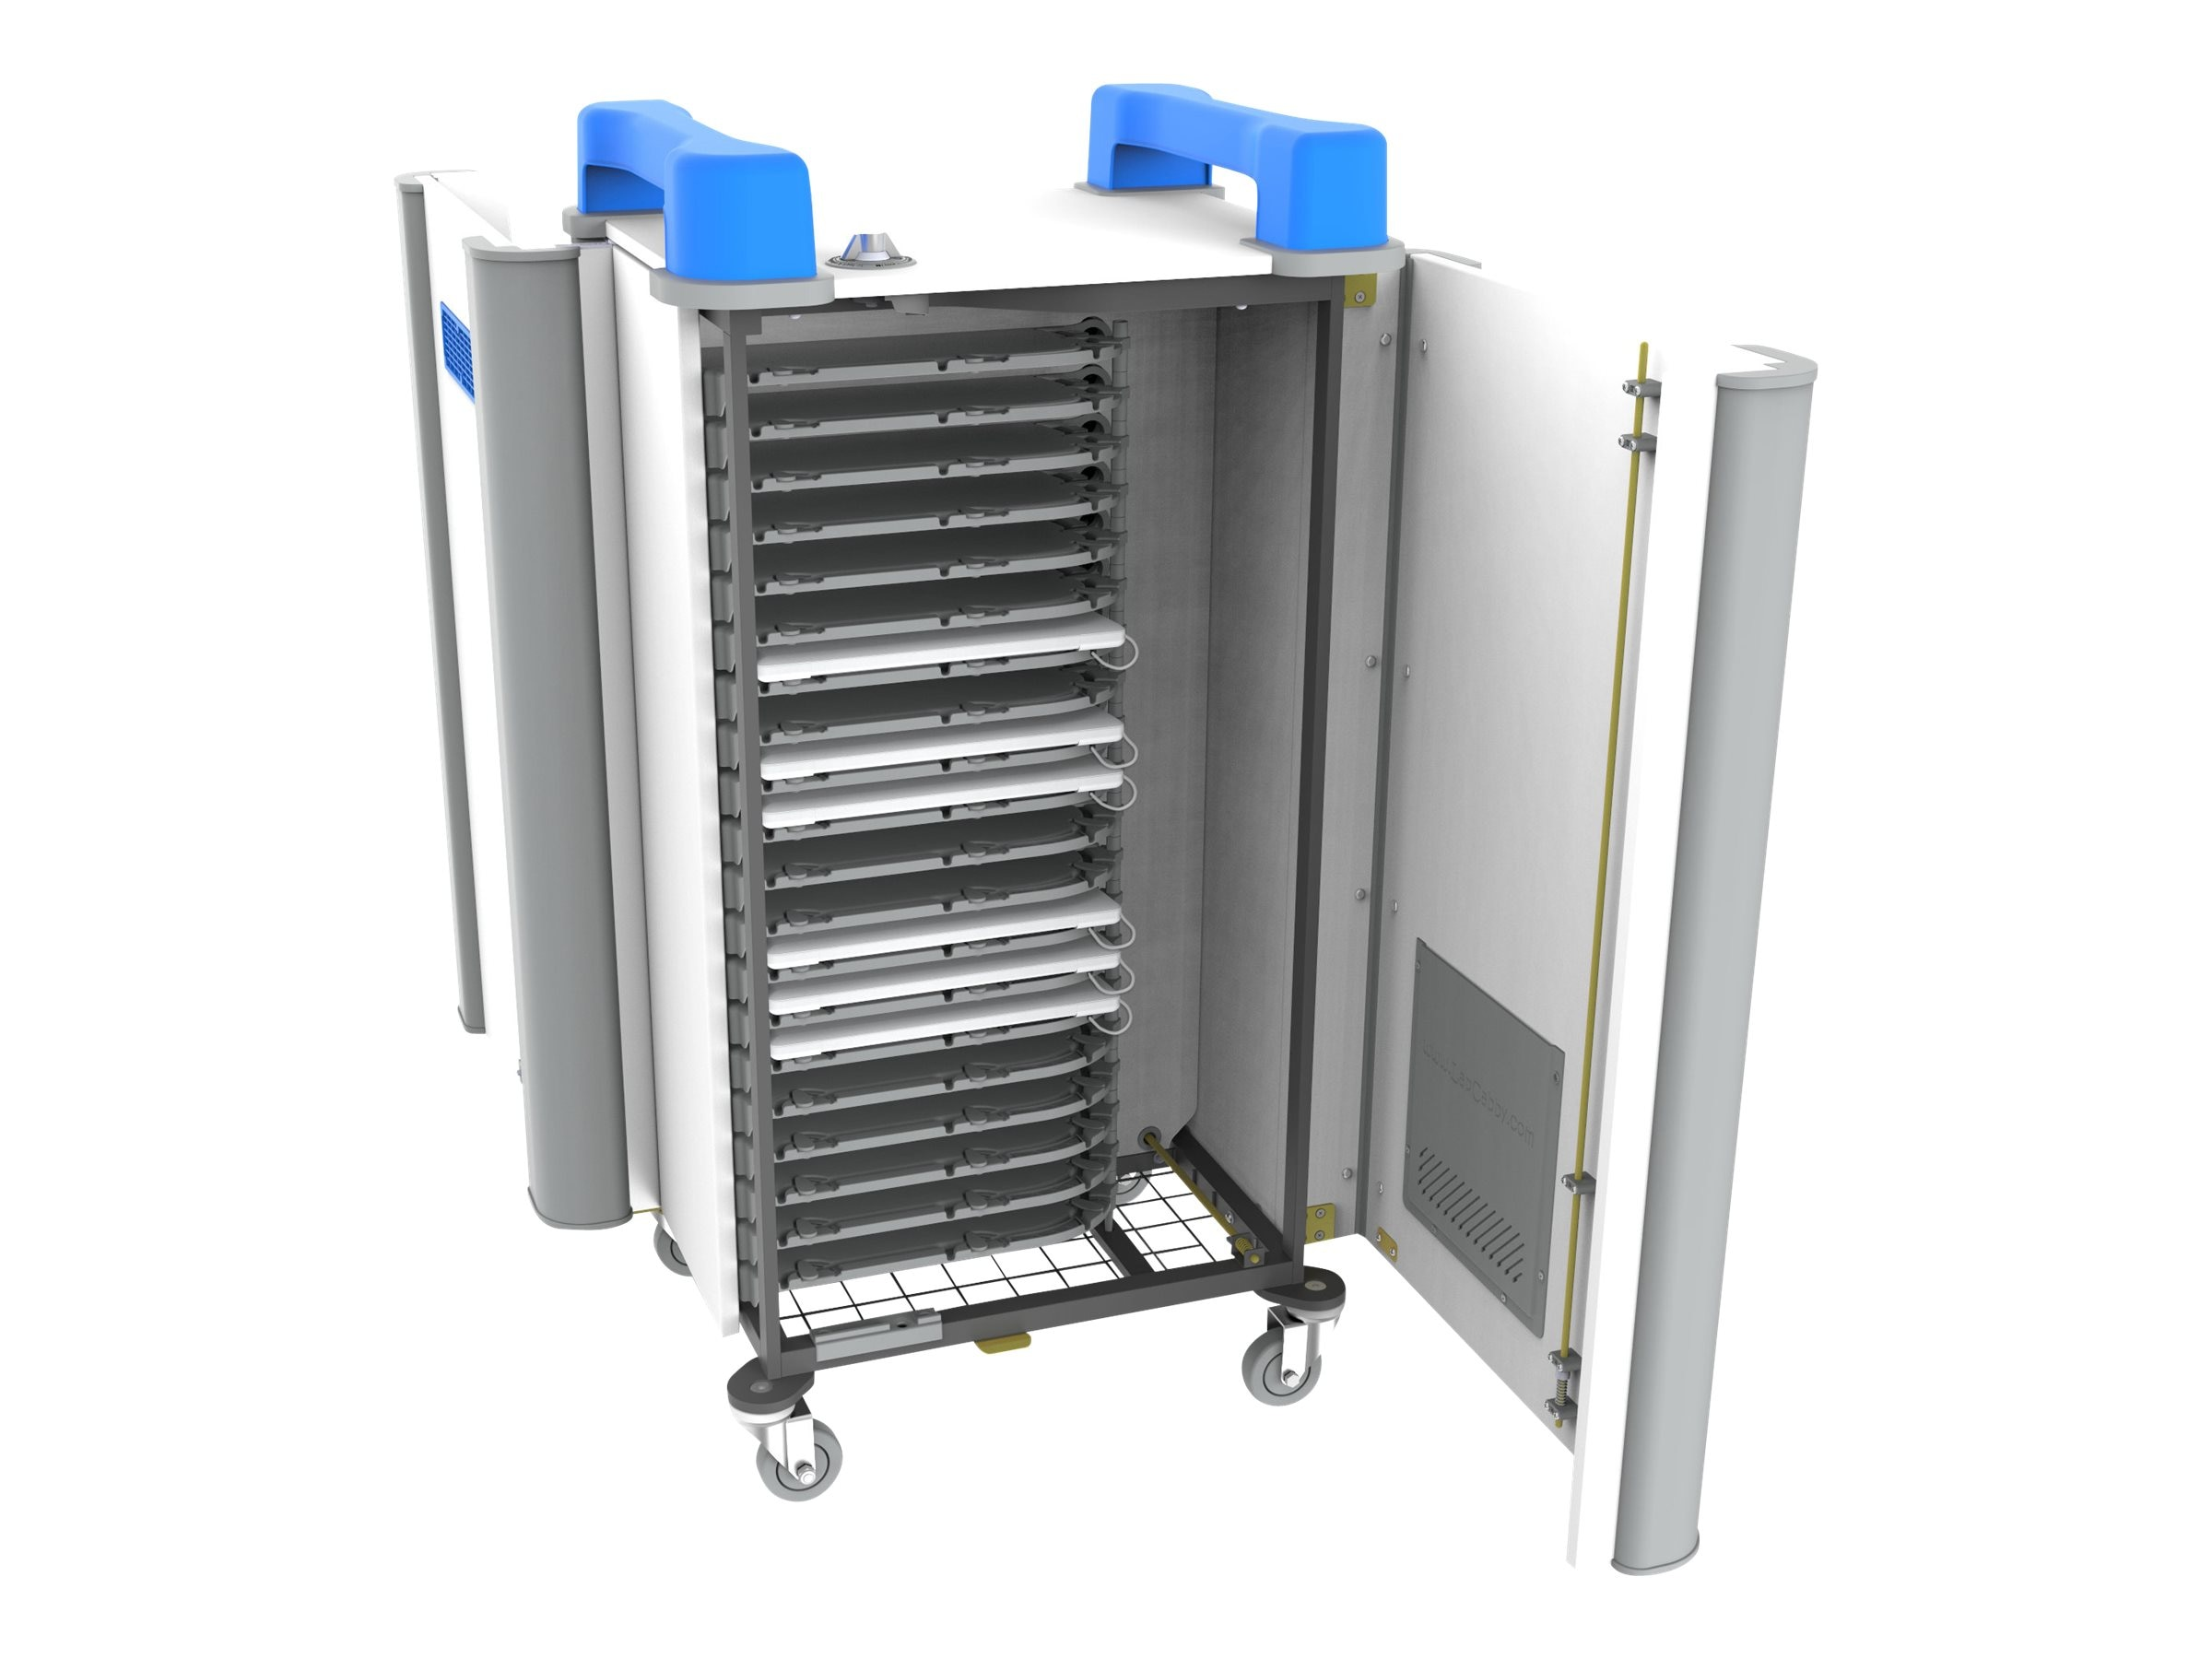 LapCabby 20h 20-Unit Universal Device Cart, Blue, UNICAB20HBL/USA